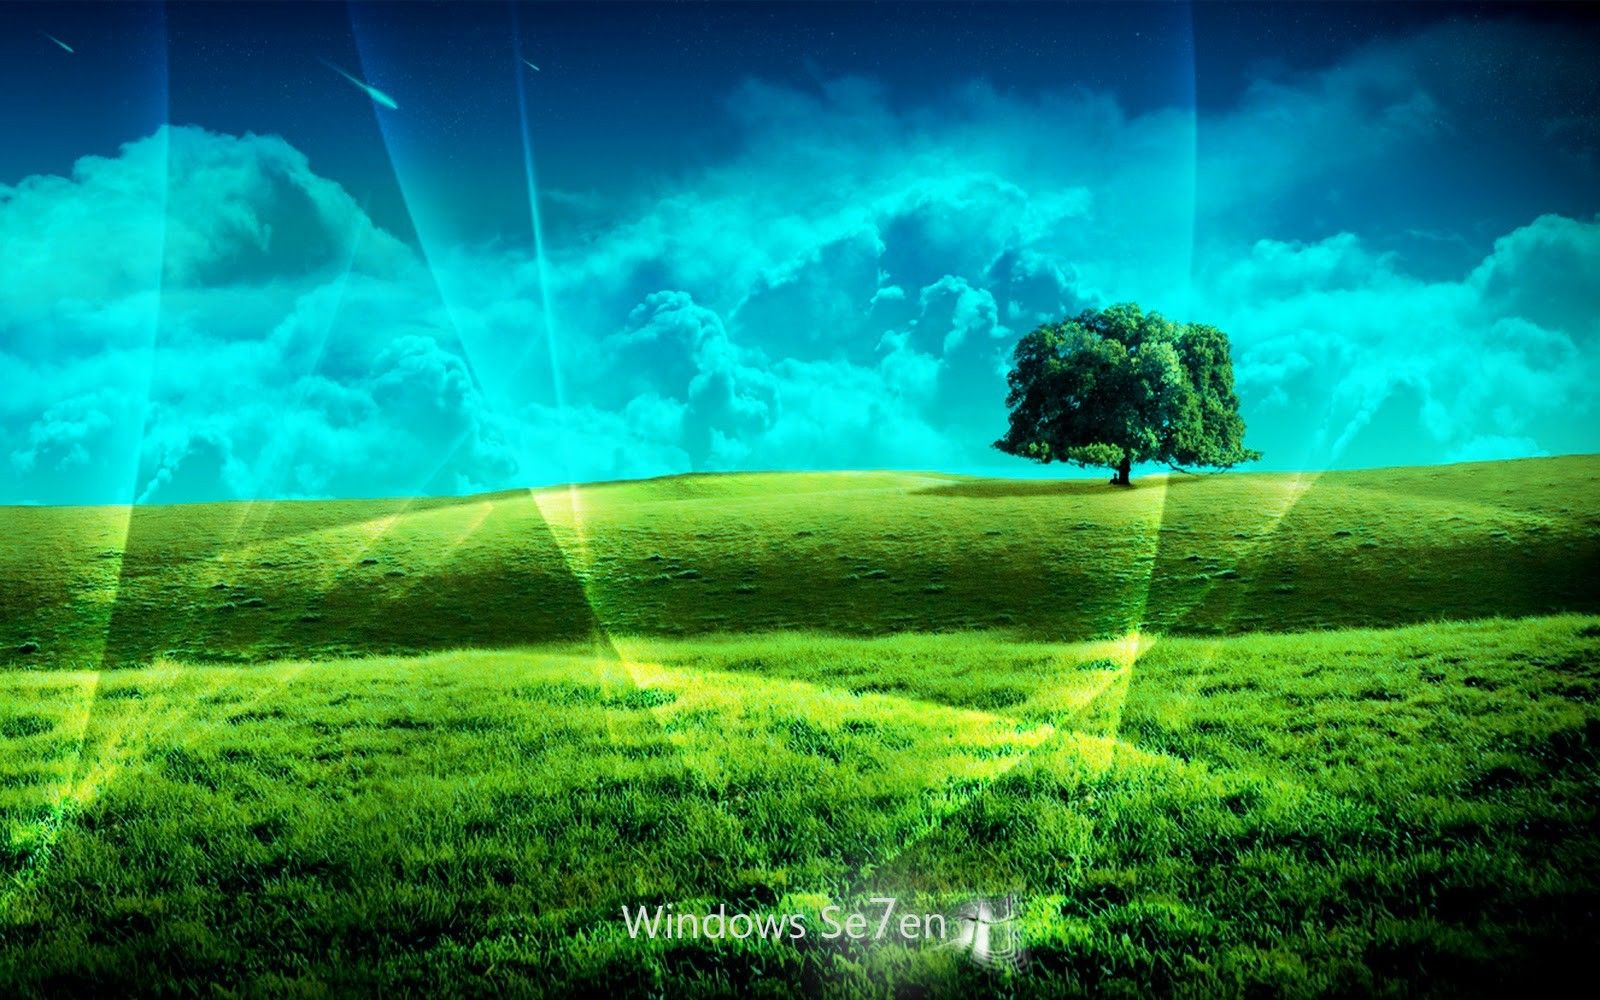 Free Animated Desktop Wallpapers For Windows 7 Free Desktop Wallpaper Backgrounds Moving Wallpapers Desktop Wallpapers Backgrounds